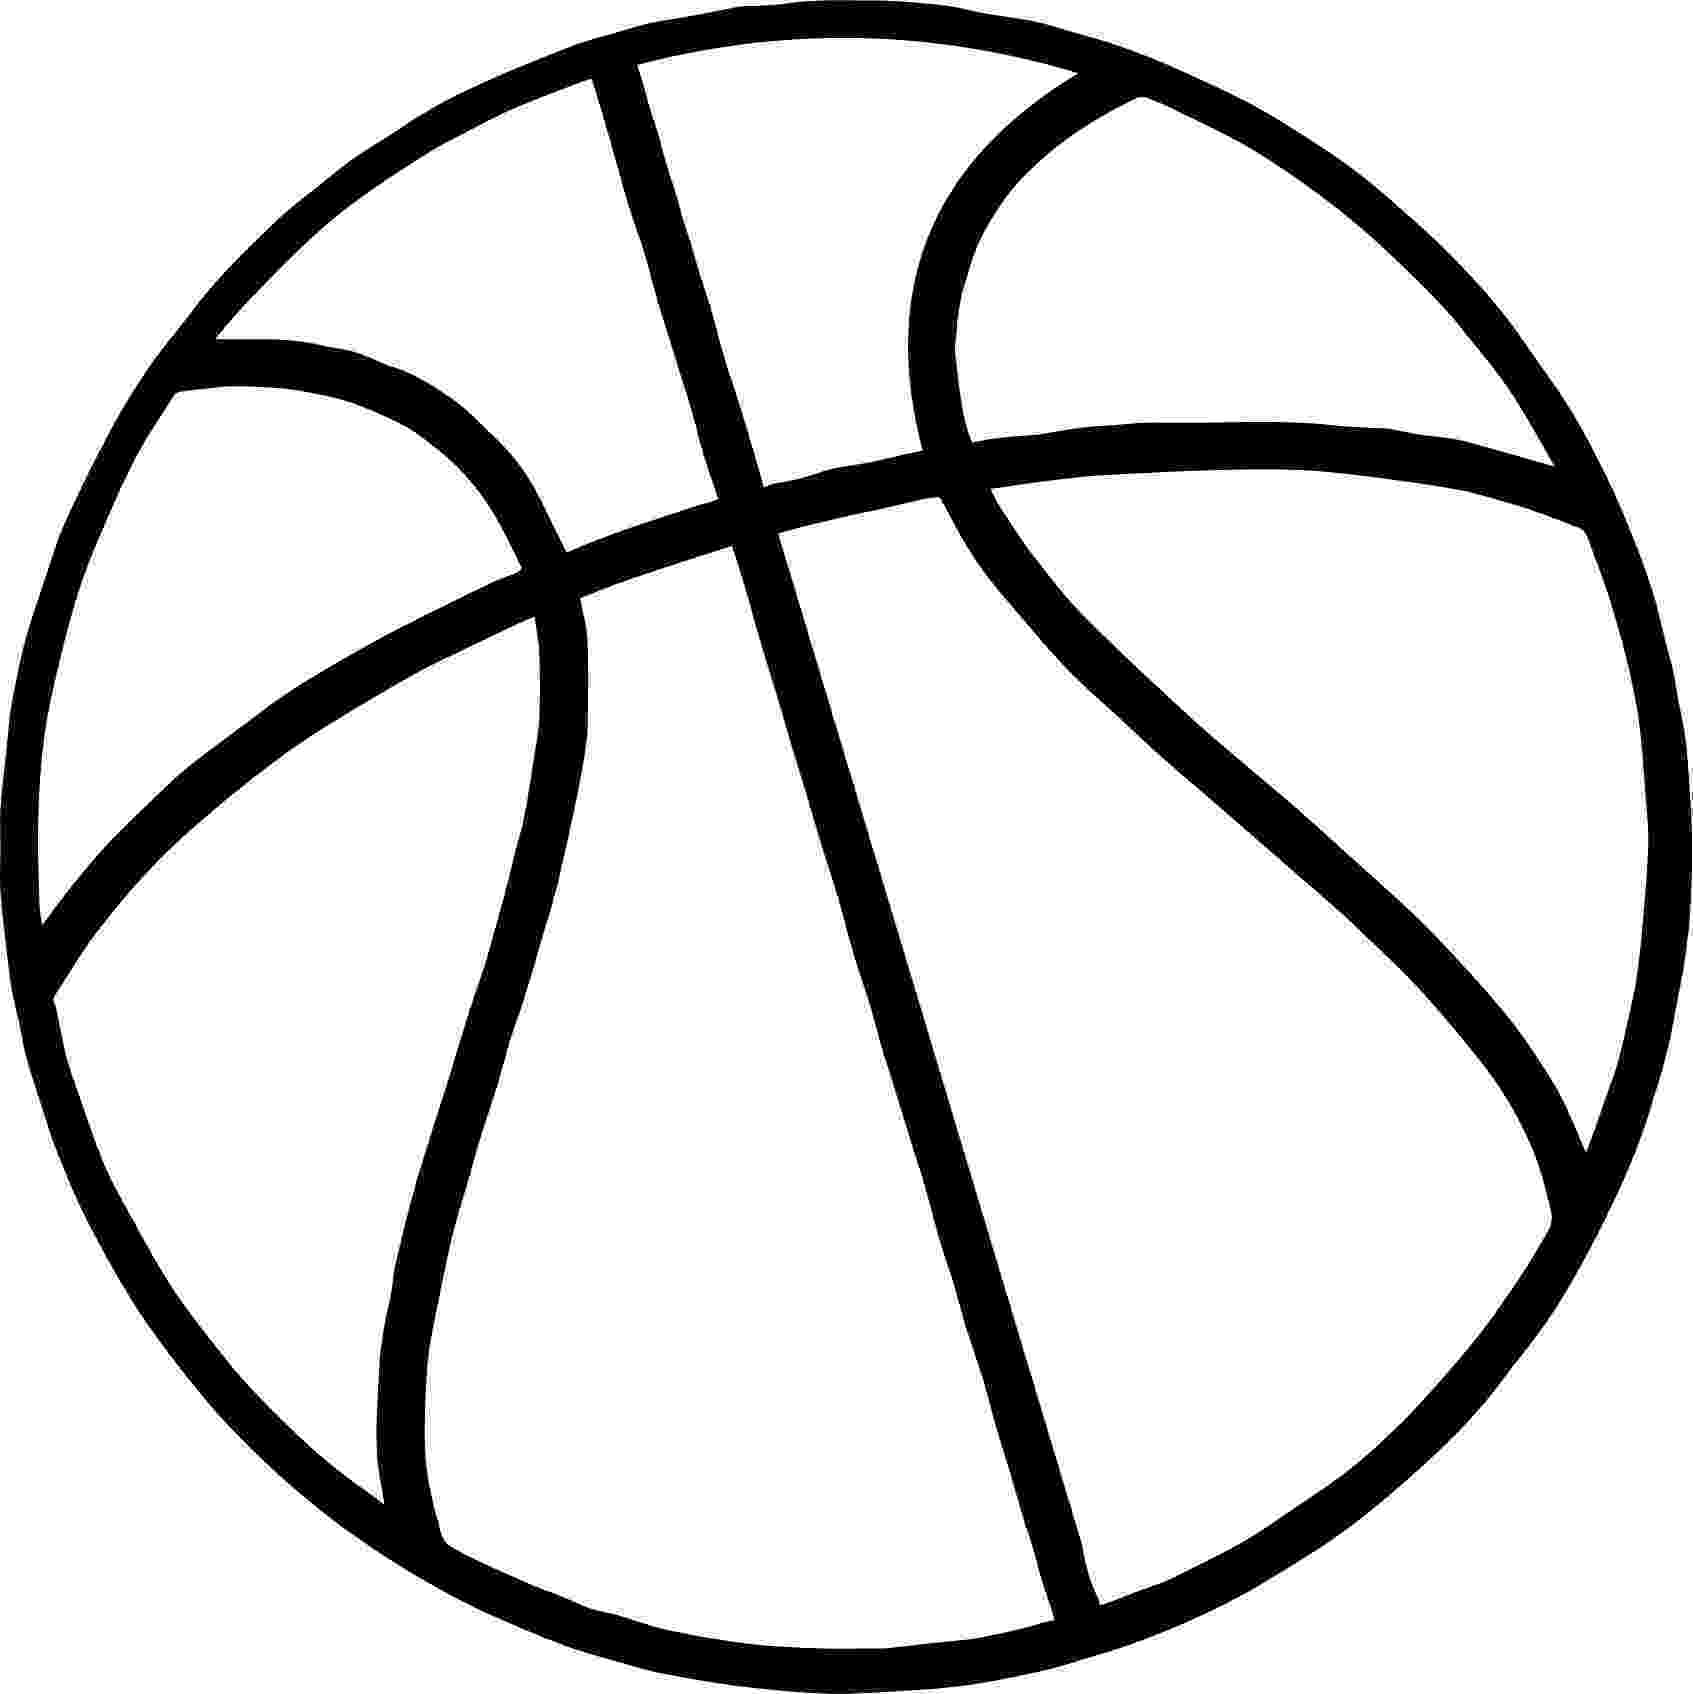 ball coloring pages beach ball coloring page coloring pages ball pages coloring